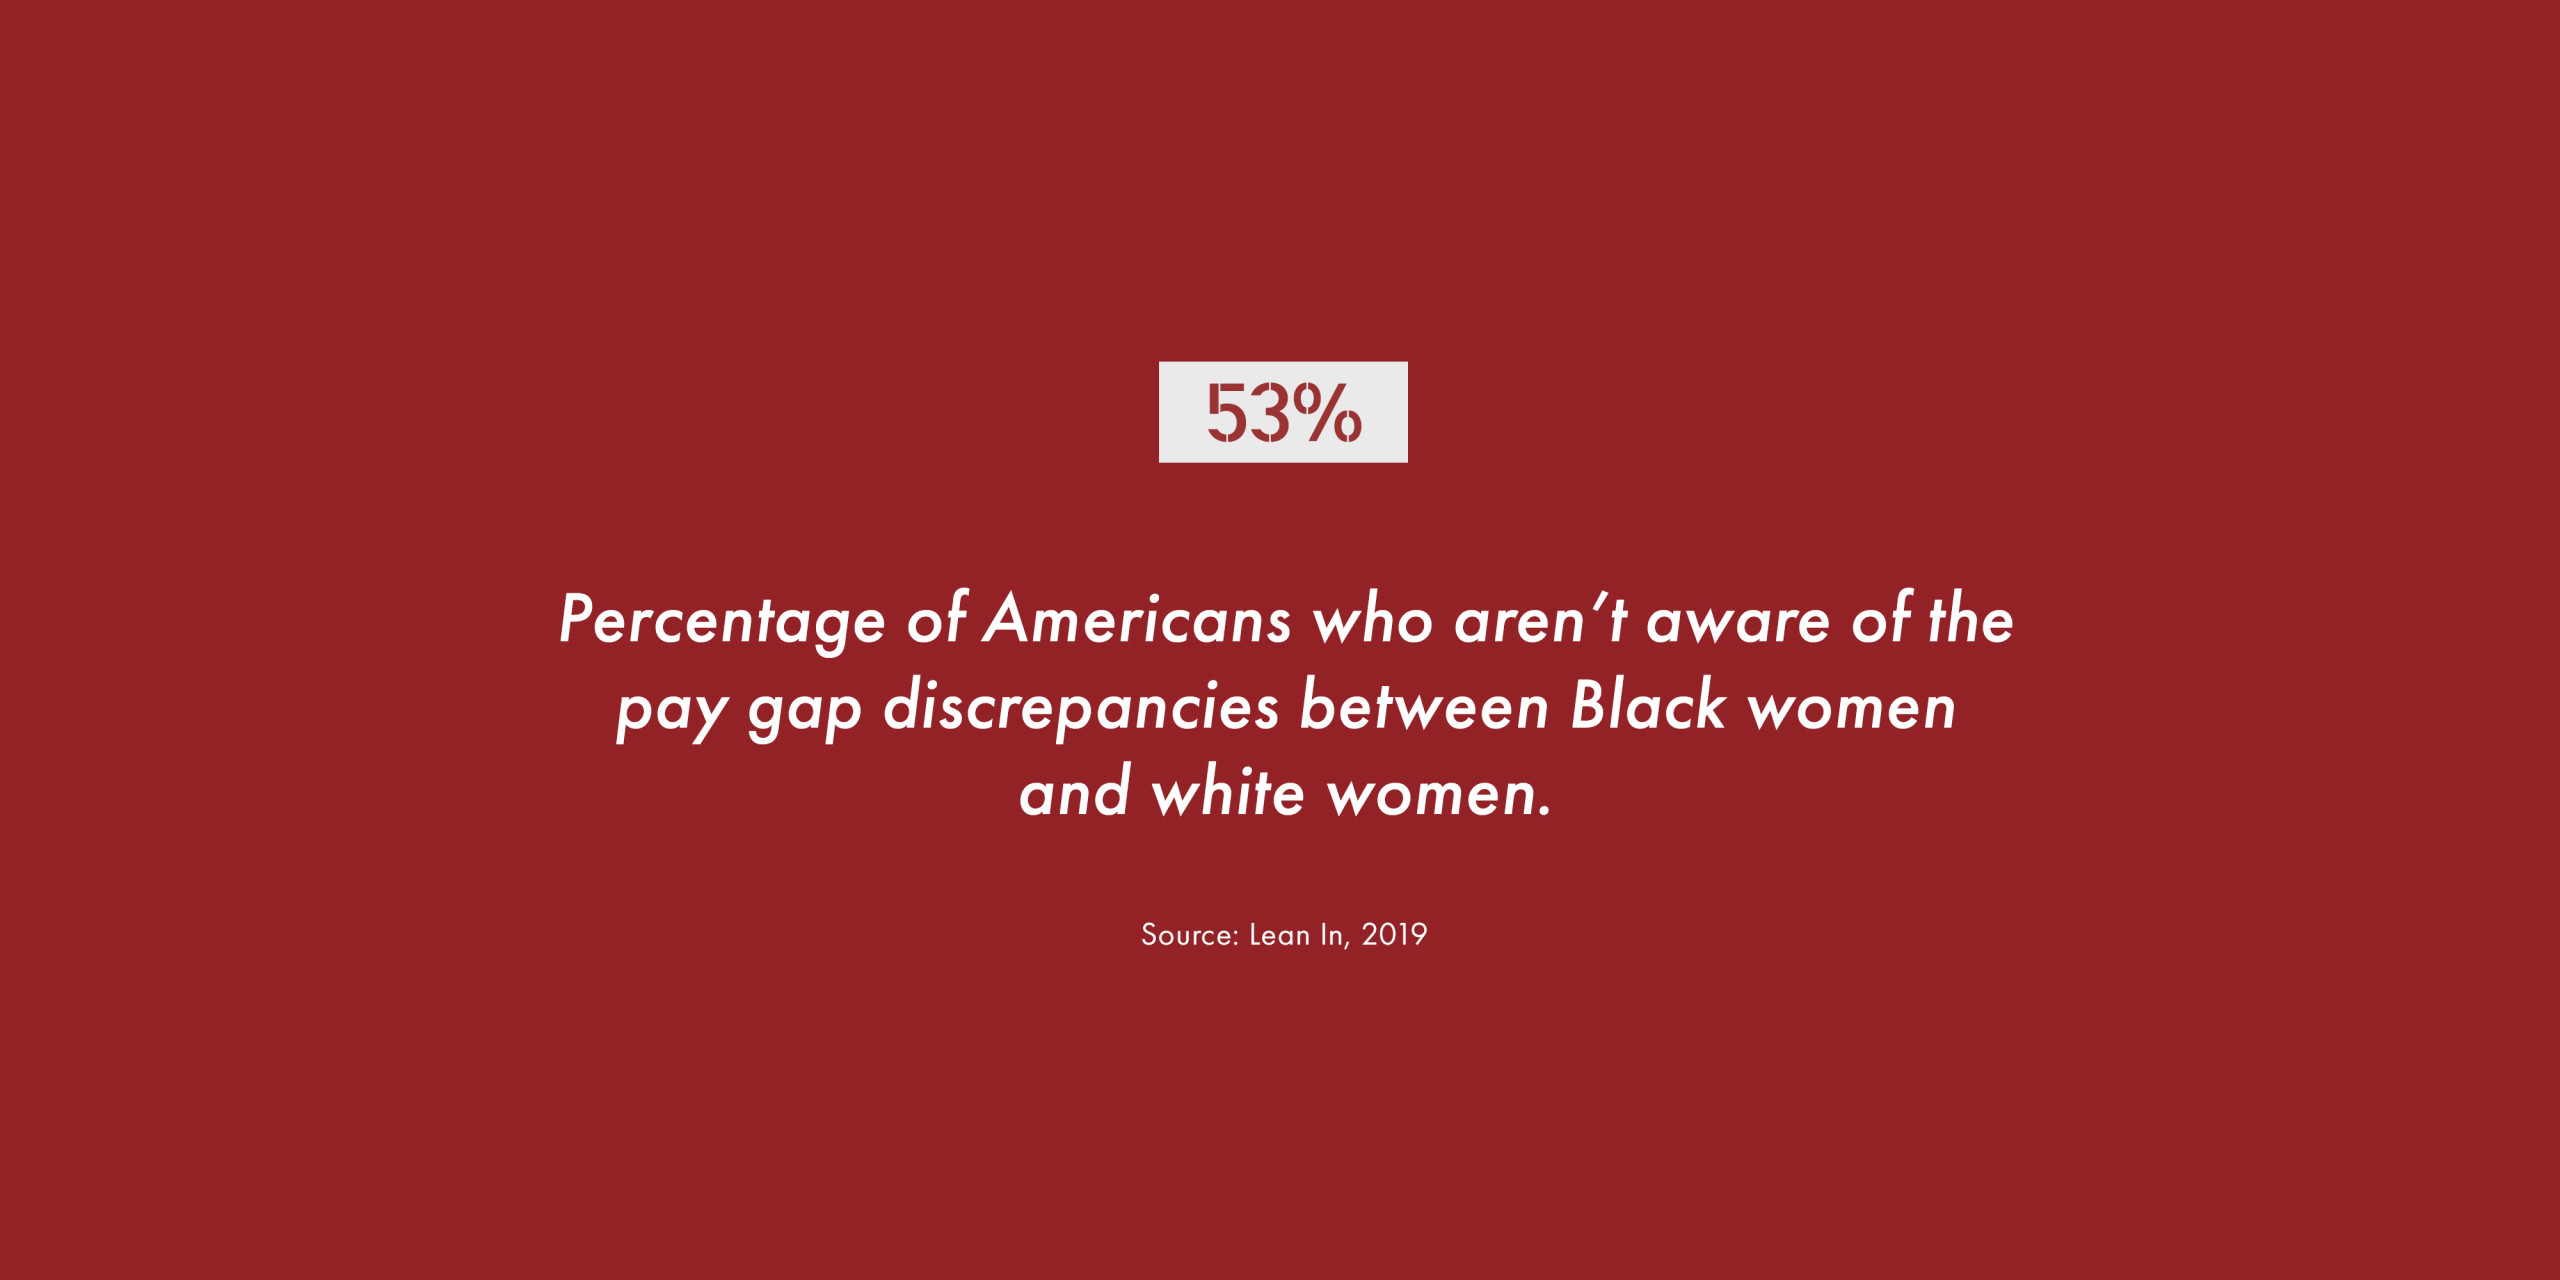 53 percent. Percentage of Americans who aren't aware of the pay gap discrepancies between black women and white women.